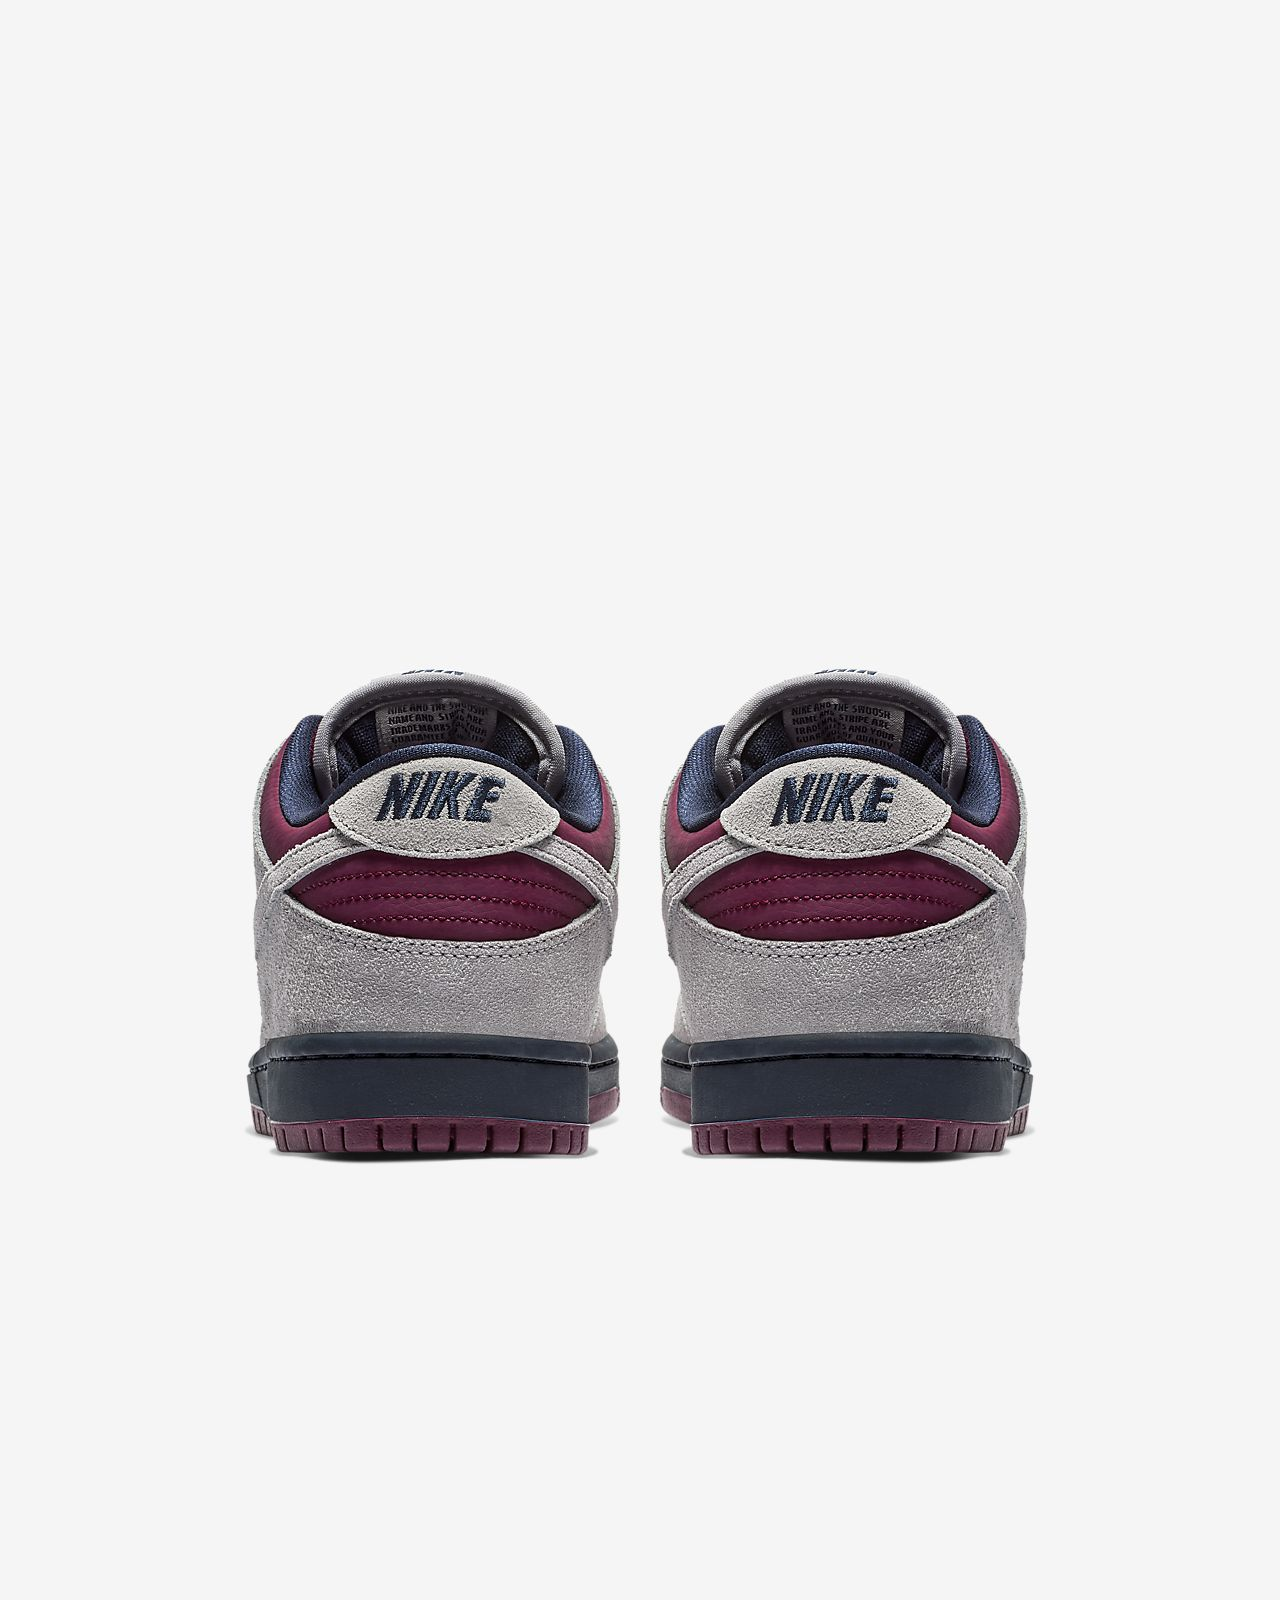 big sale 9738b 35ac2 ... Nike SB Dunk Low Pro Skate Shoe